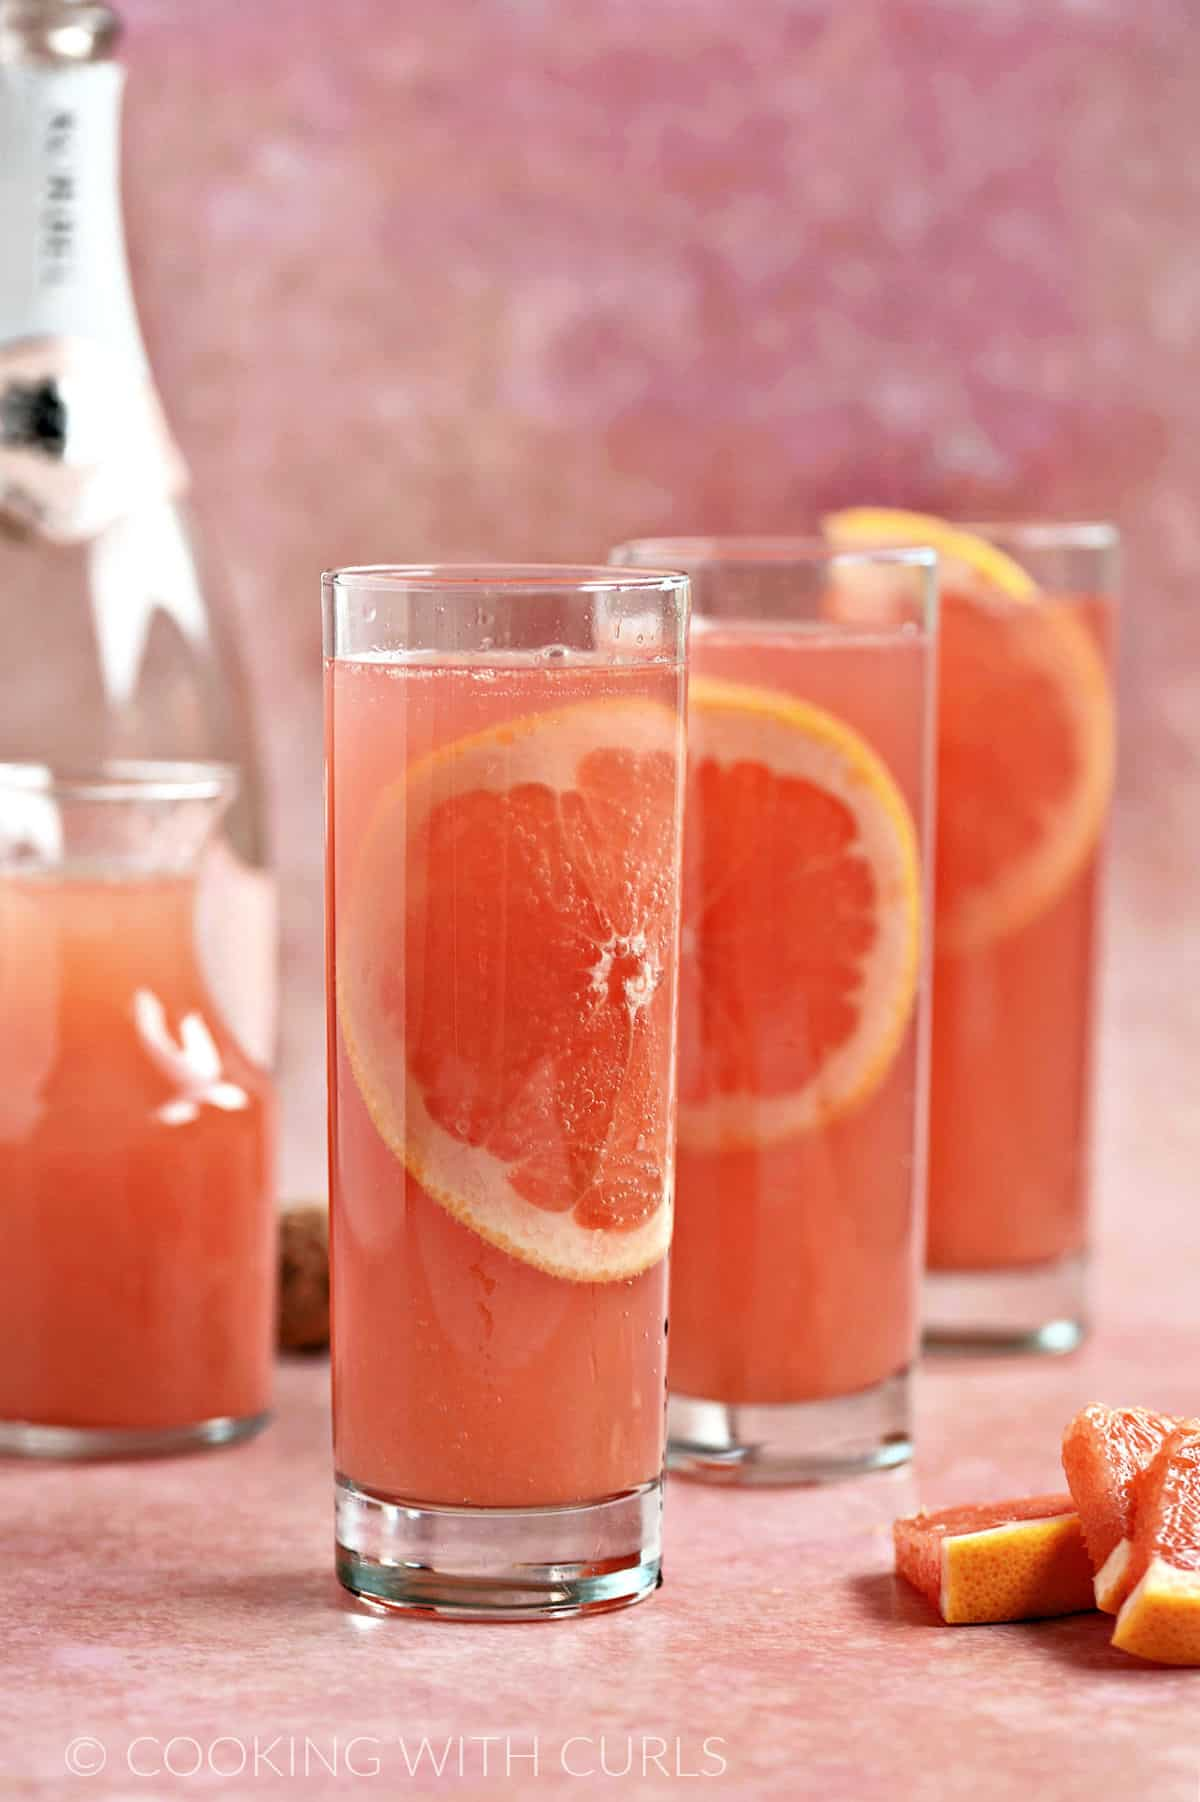 Three skinny glasses filled with a thin slice of grapefruit, sparkling wine and red grapefruit juice with a carafe of grapefruit juice in the background.